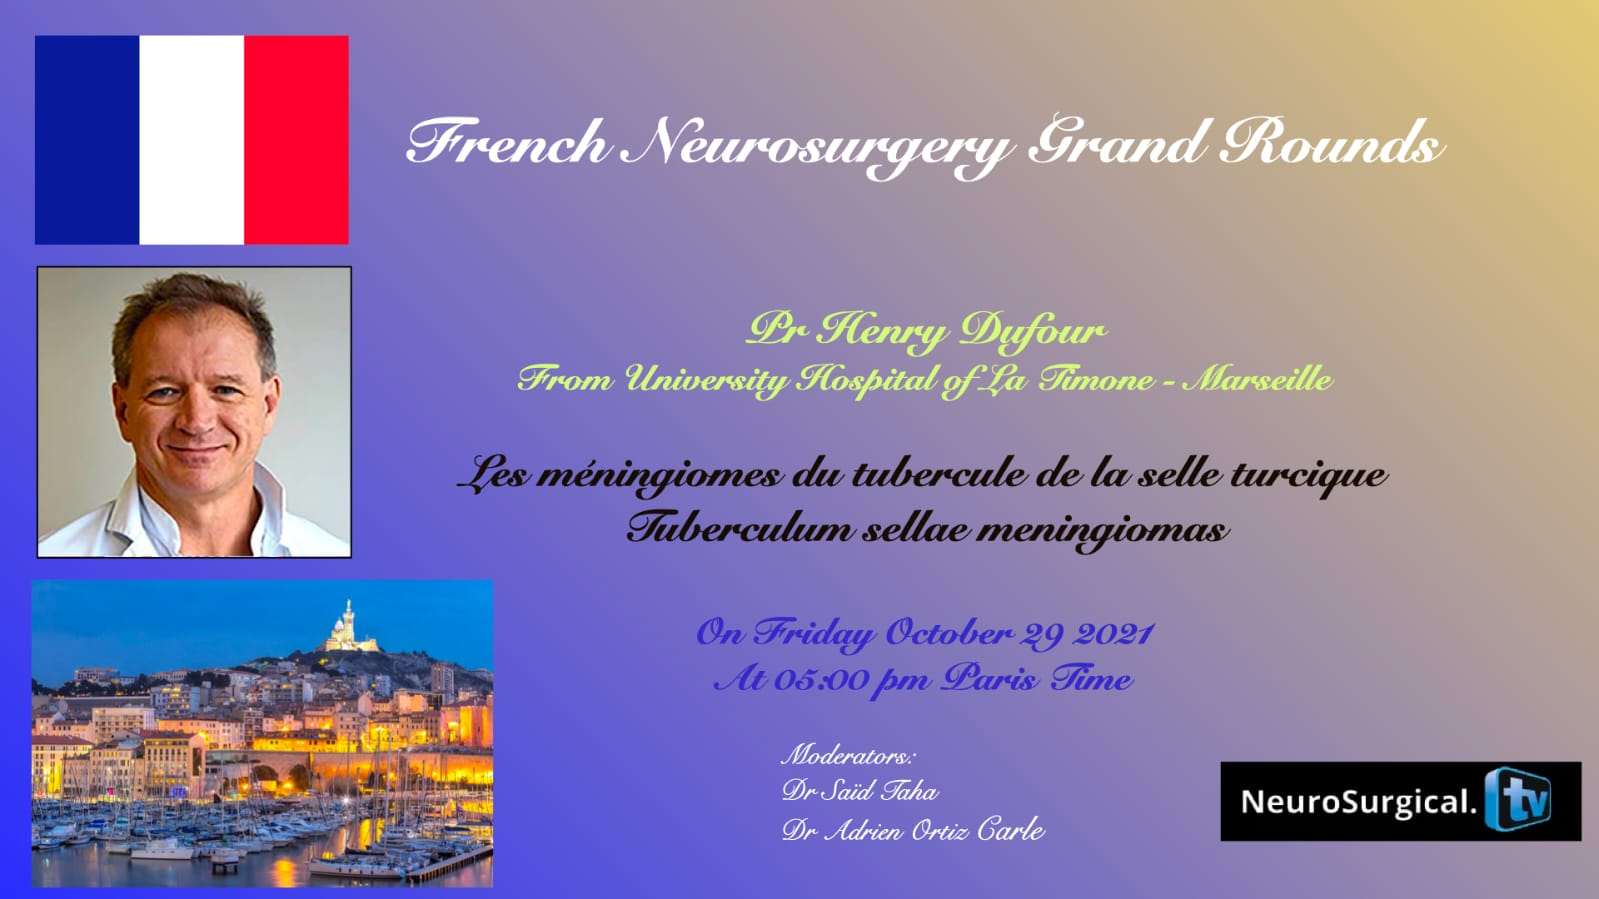 Friday, October 29, LIVE, French Neurosurgery Grand Rounds, Henry Dufour MD presents on Meningiomas